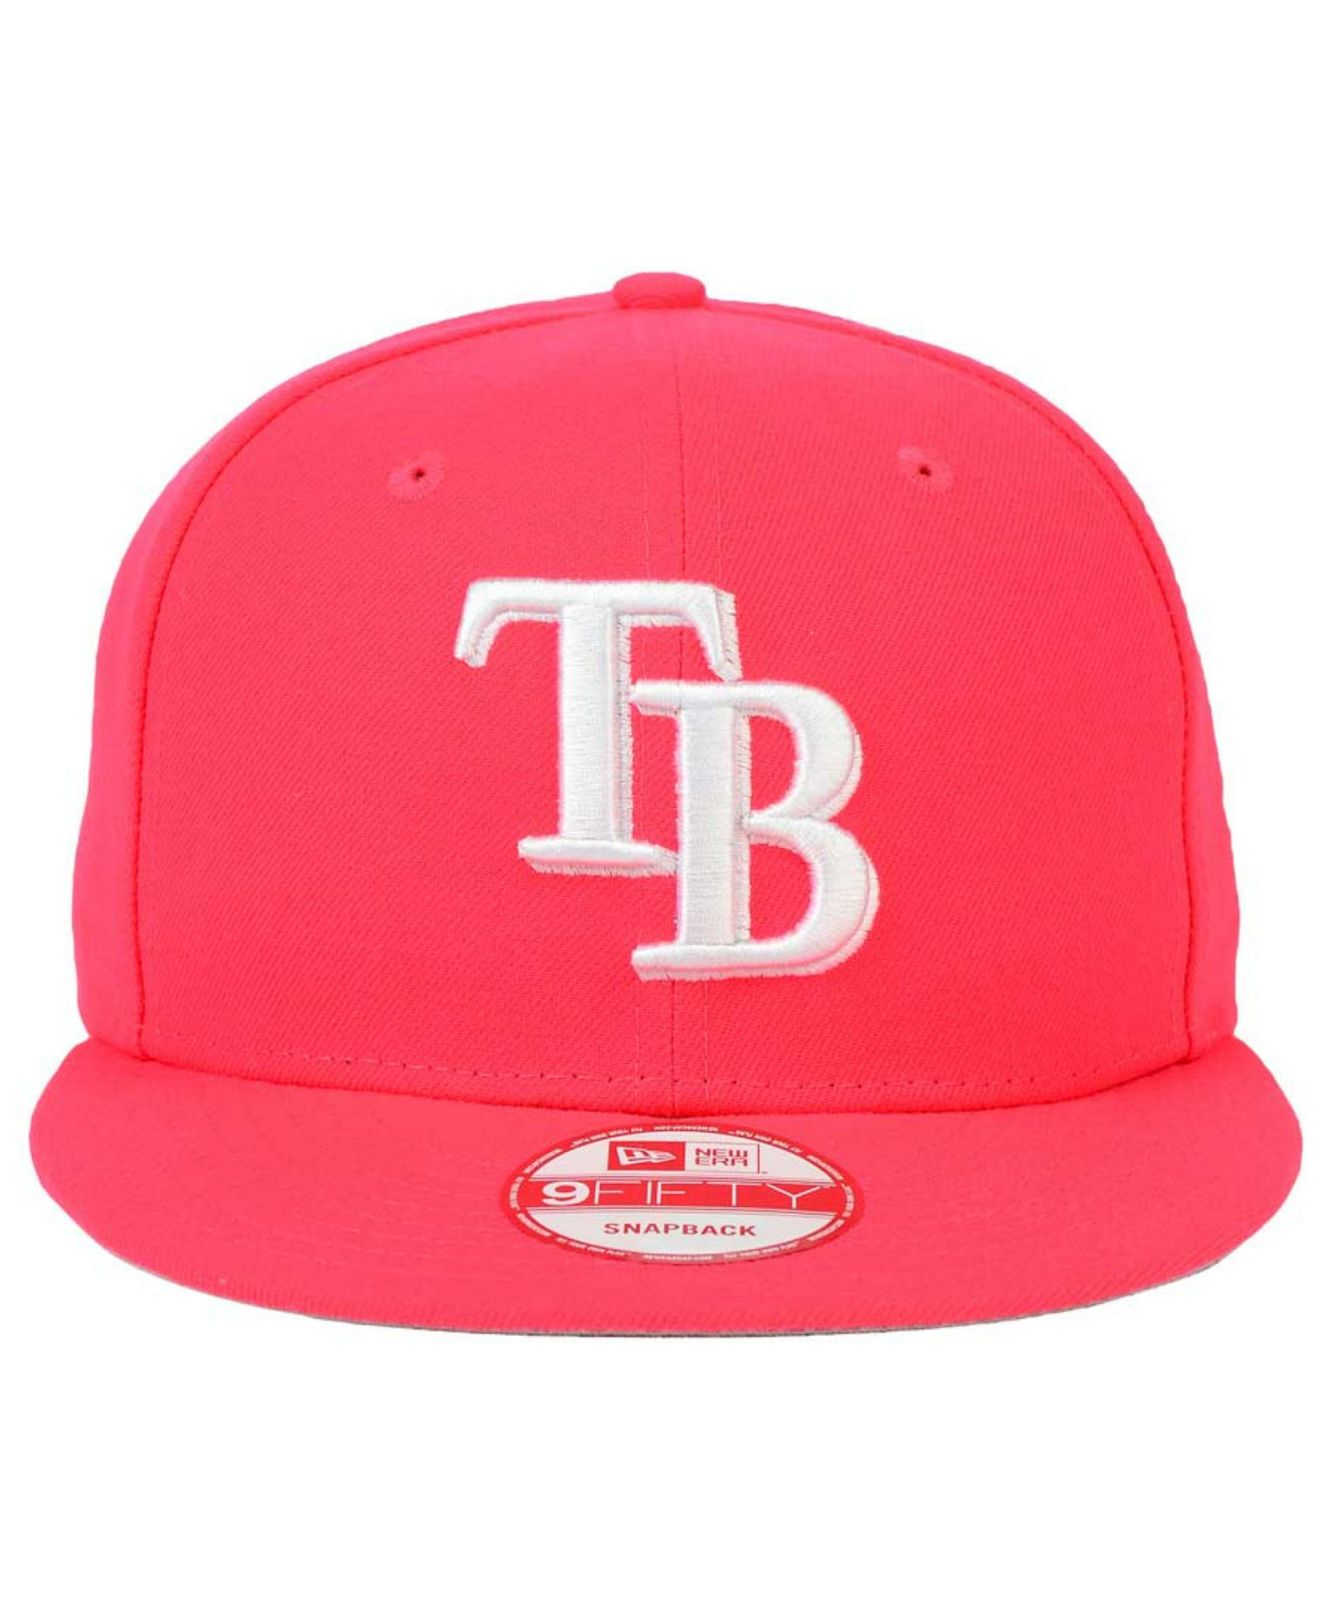 huge discount 4f922 a1b96 Lyst - KTZ Tampa Bay Rays C-dub 9fifty Snapback Cap in Red